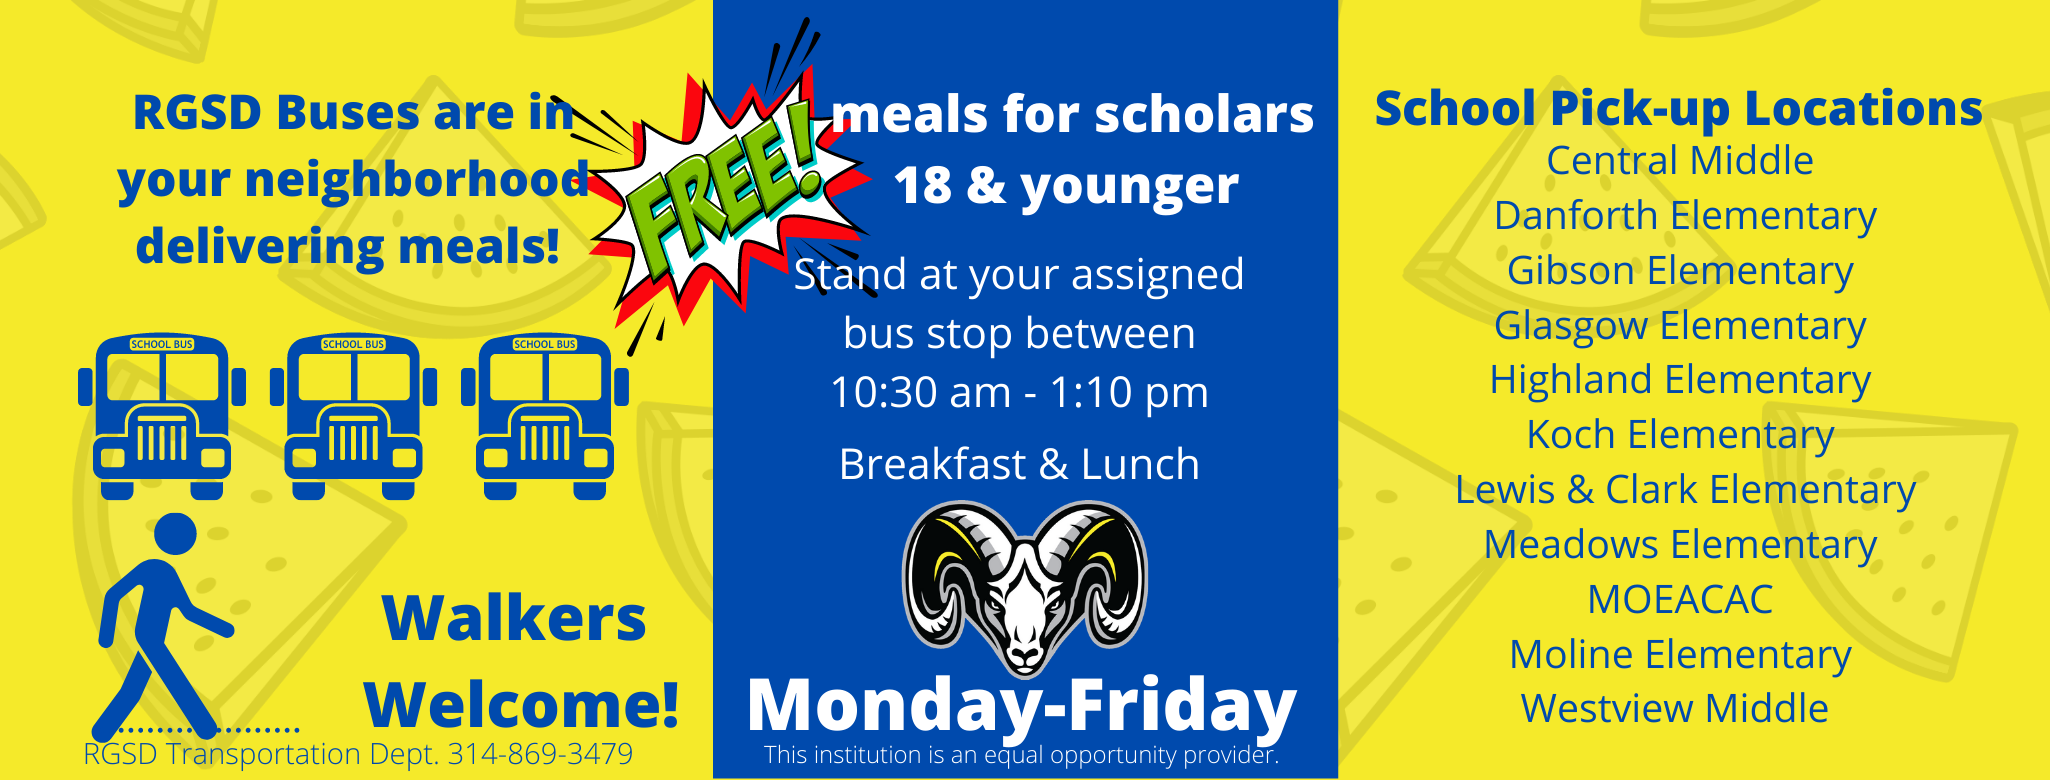 Free meals for all scholars by bus